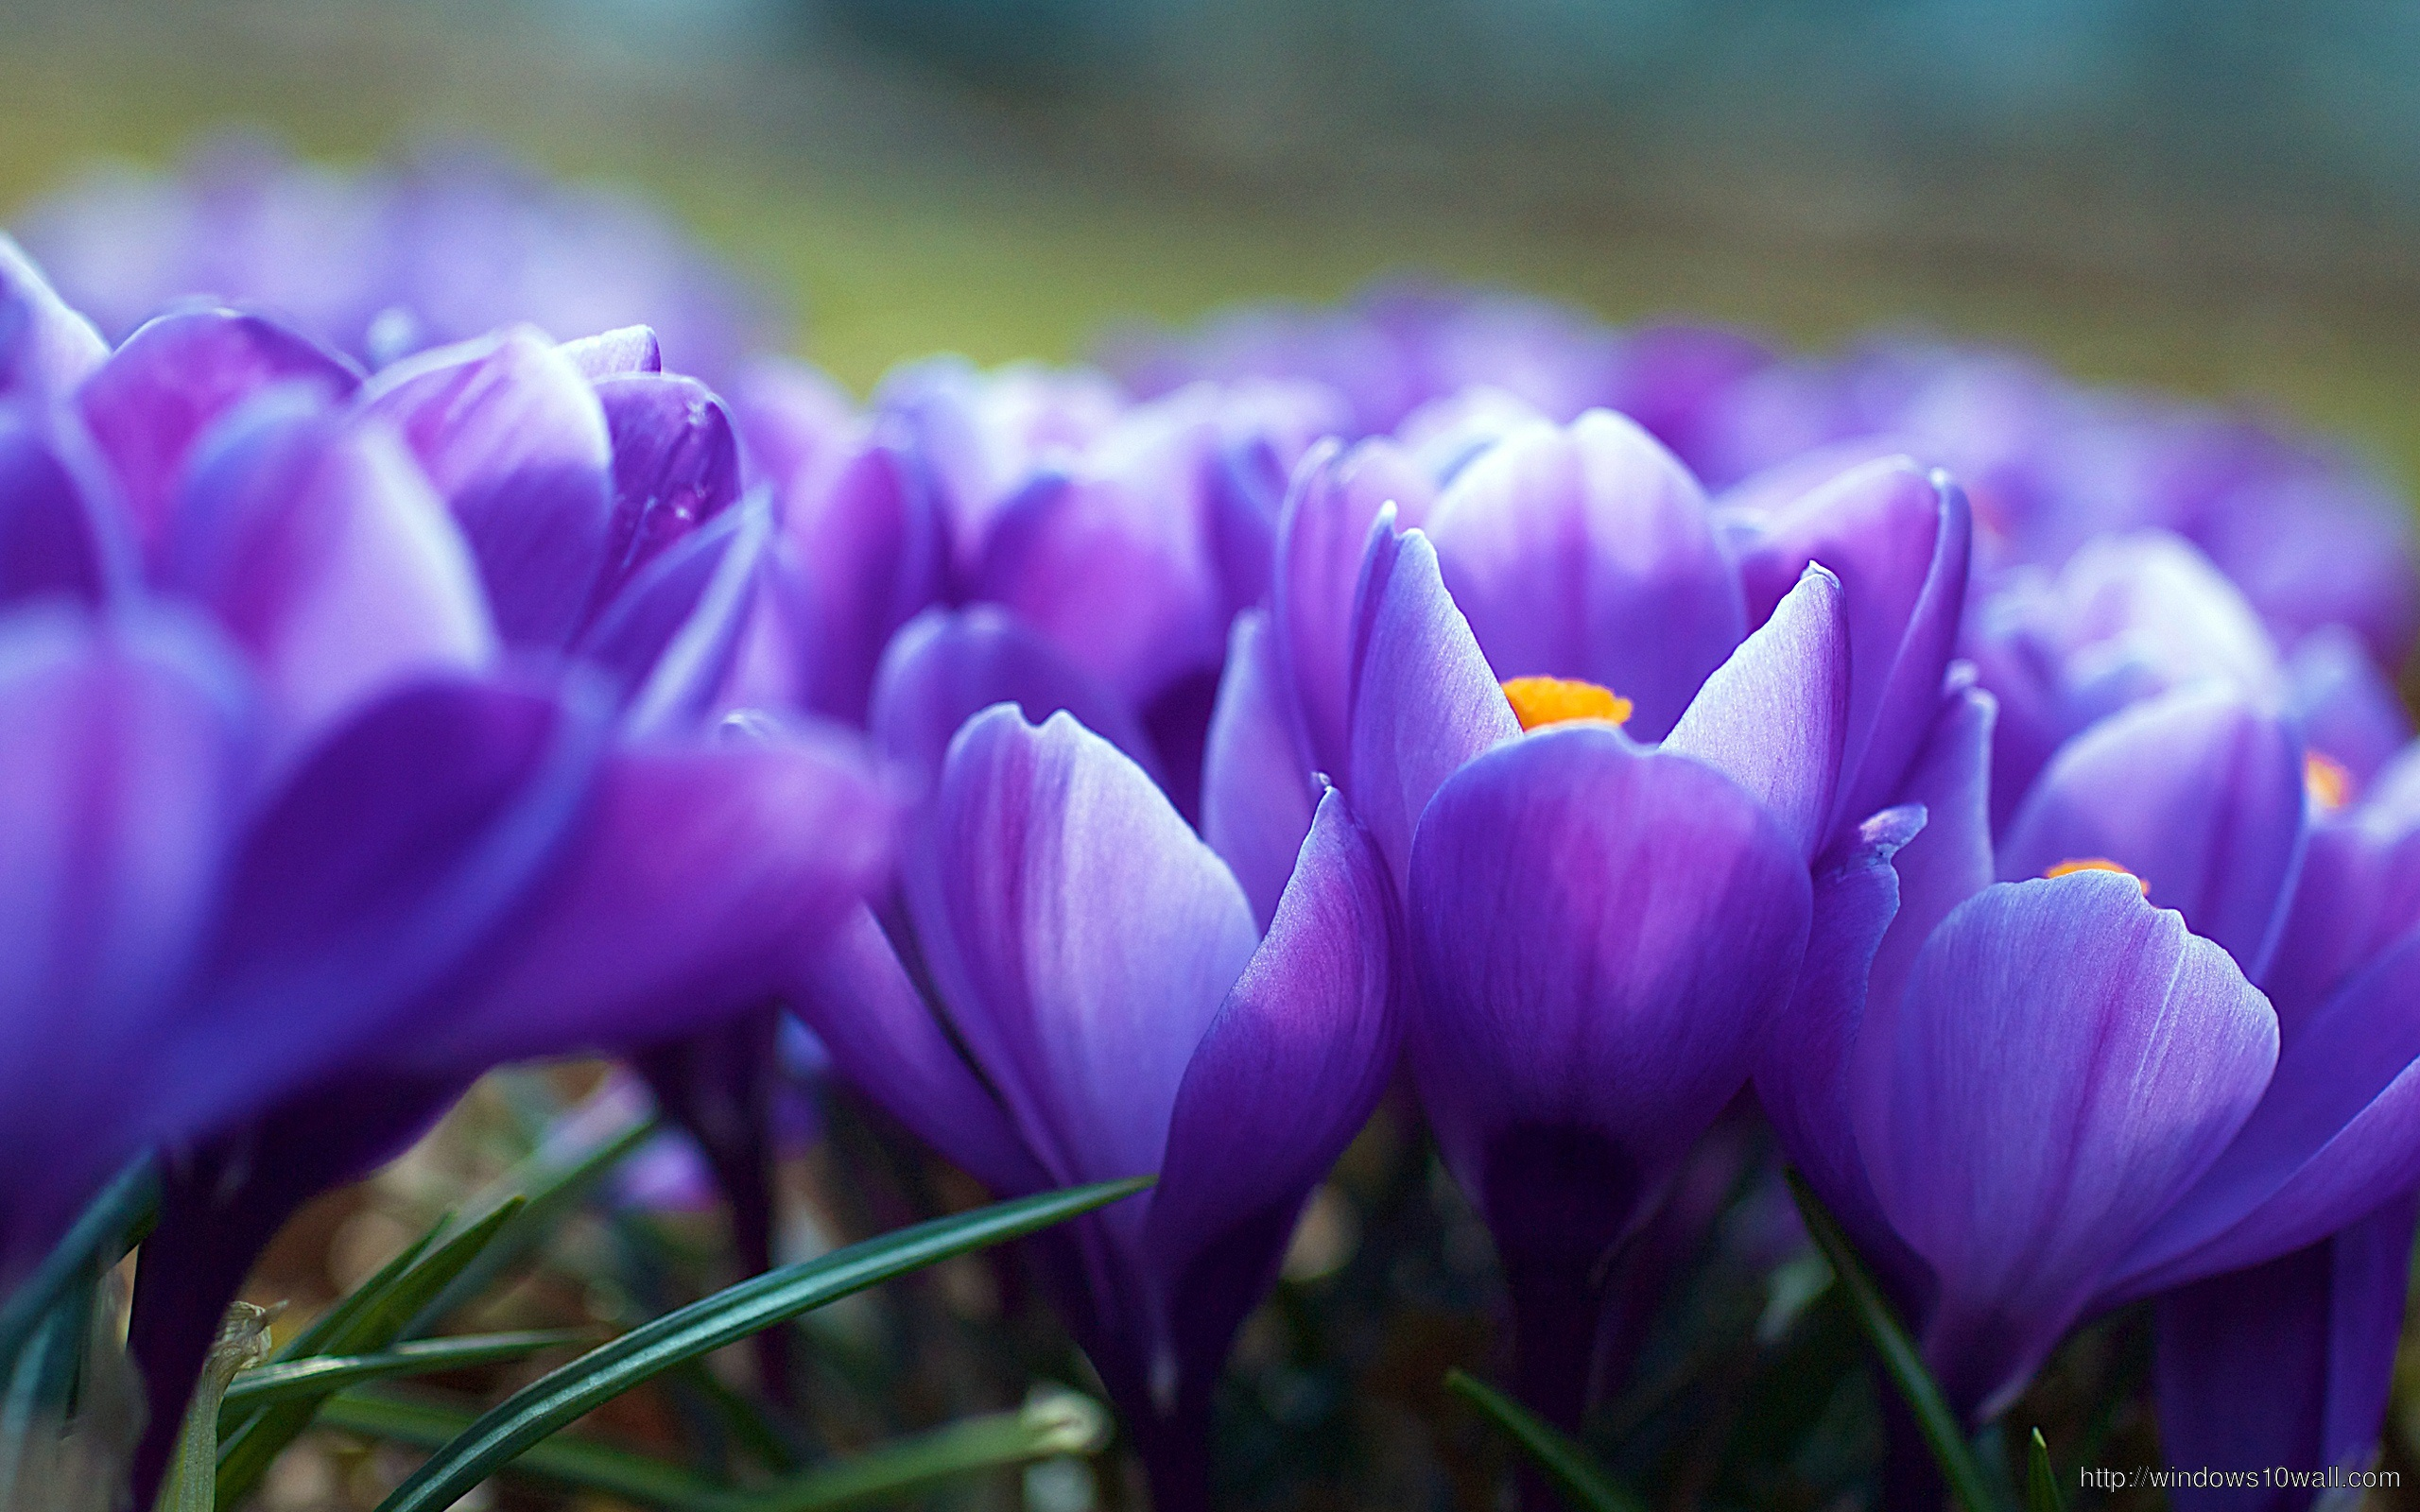 crocus-flowers-background-wallpaper